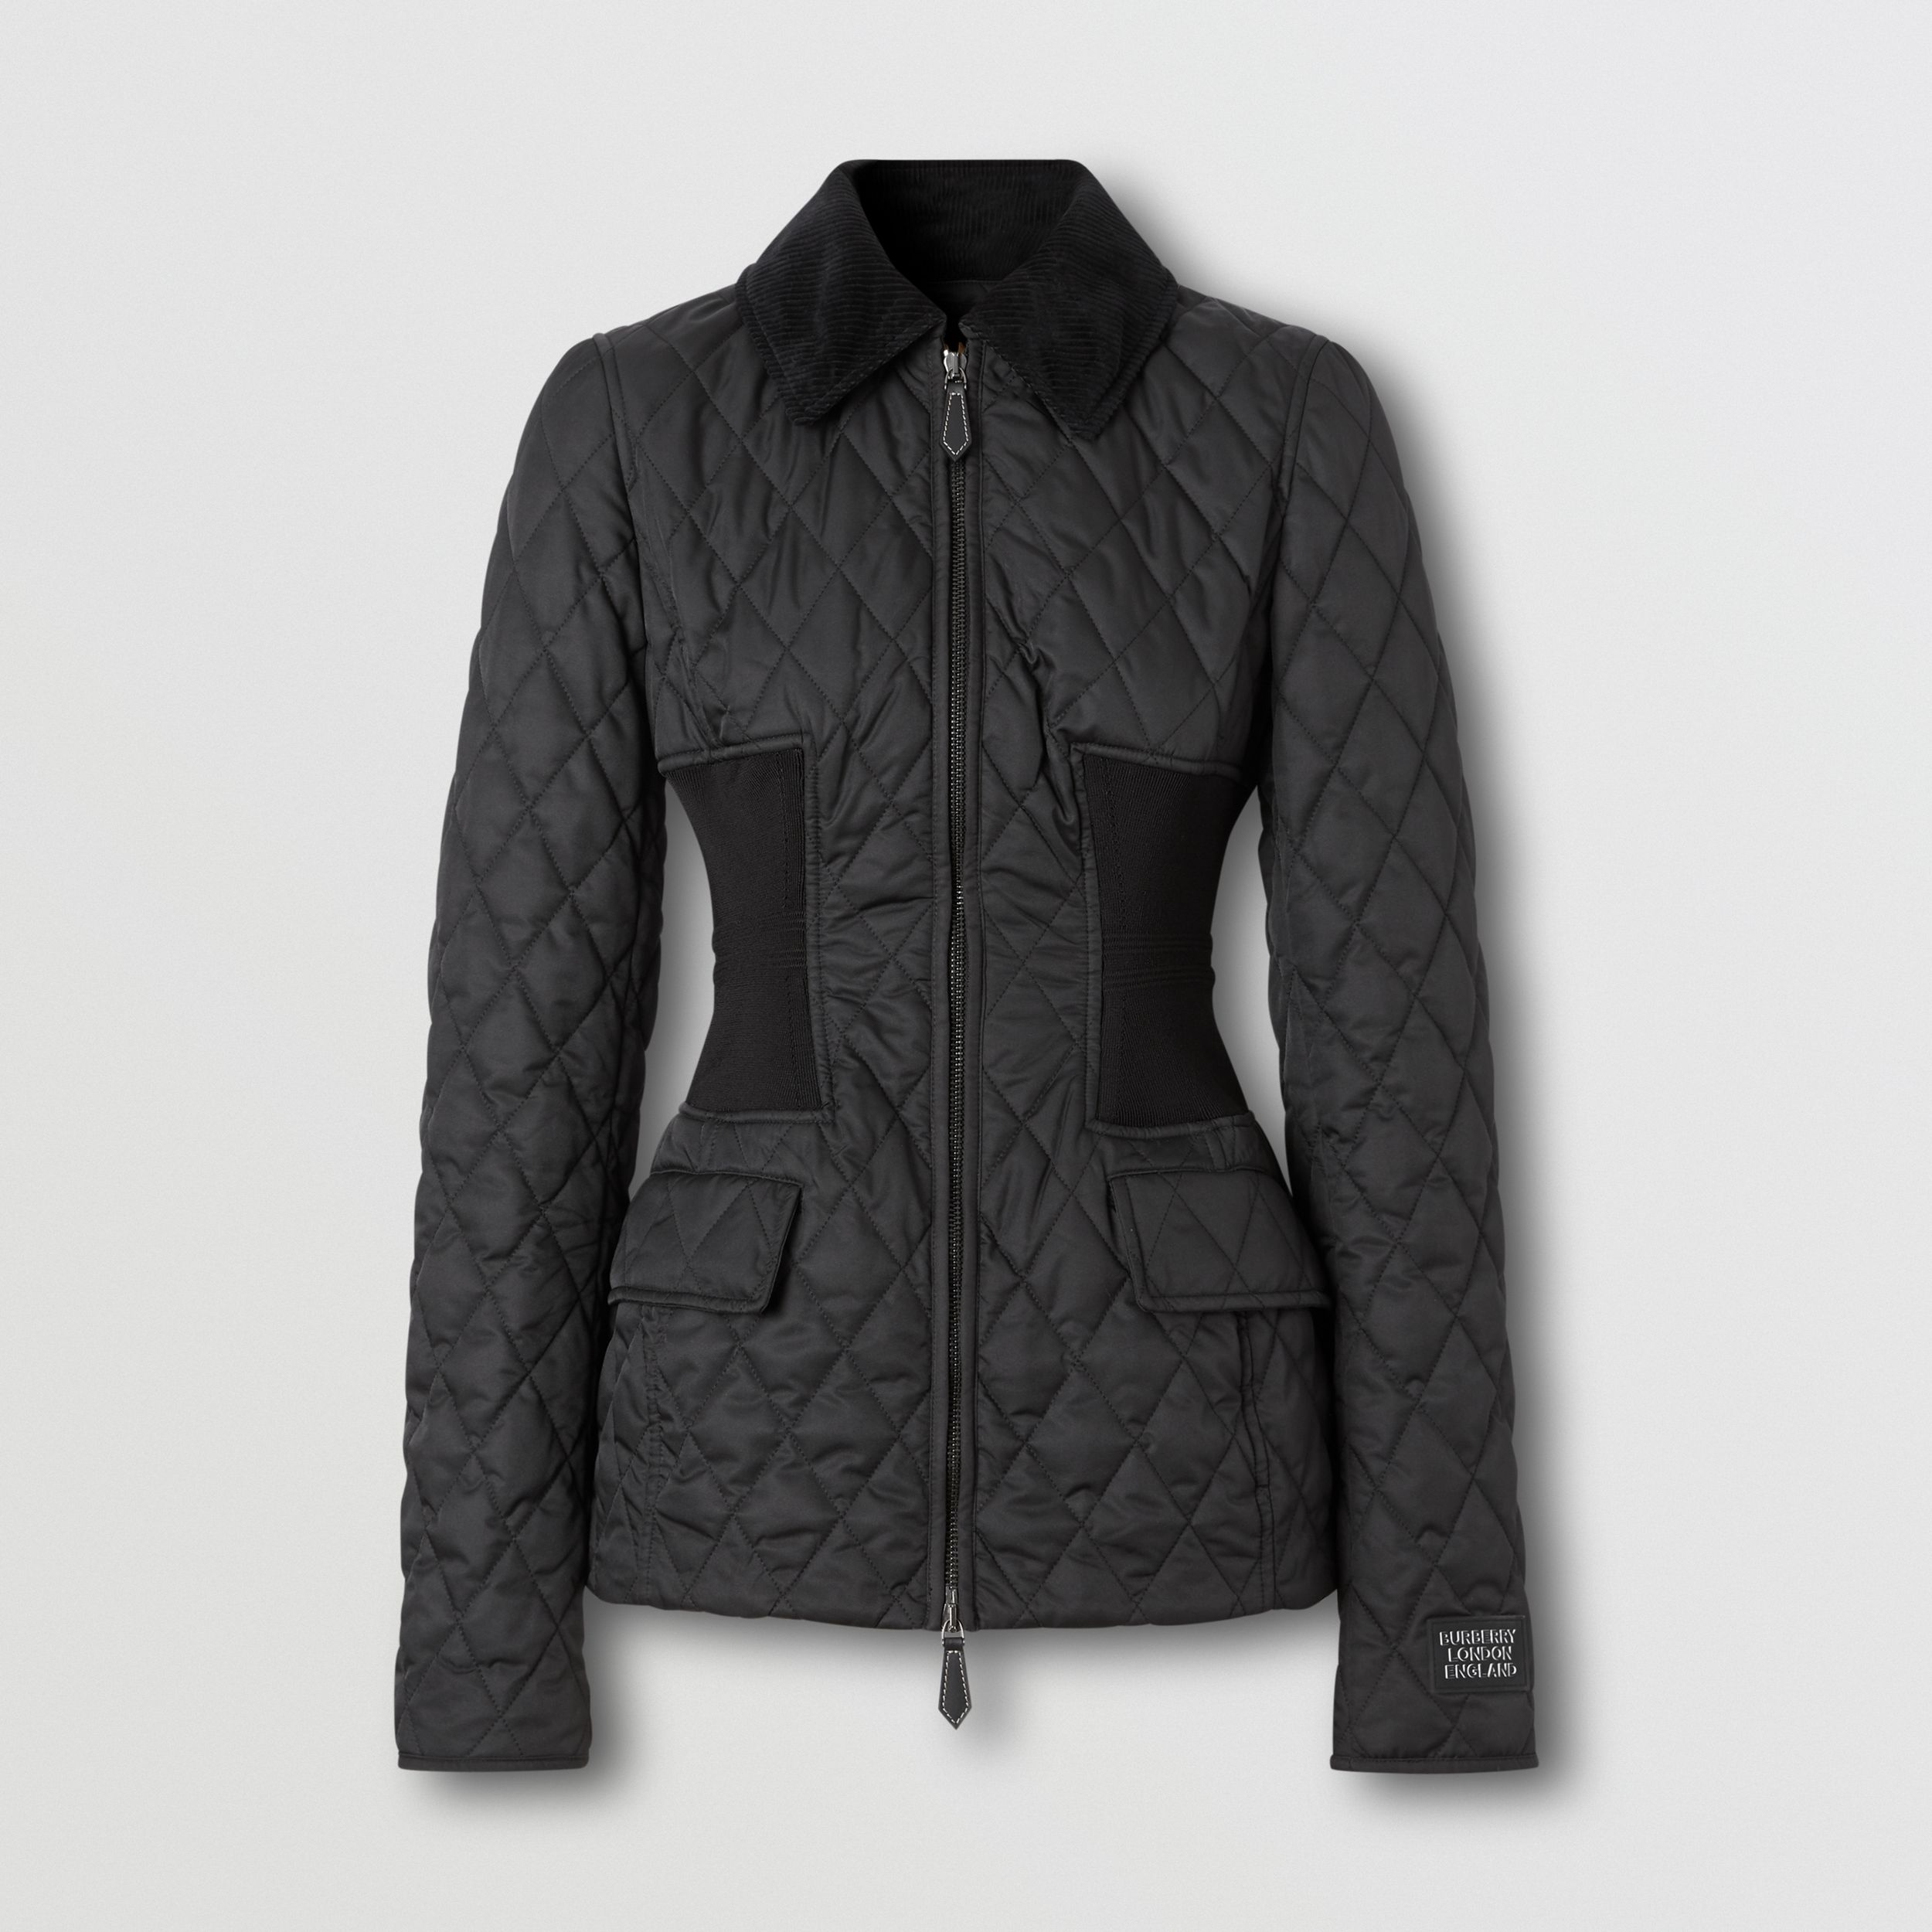 Rib Knit Panel Diamond Quilted Barn Jacket in Black - Women | Burberry - 4